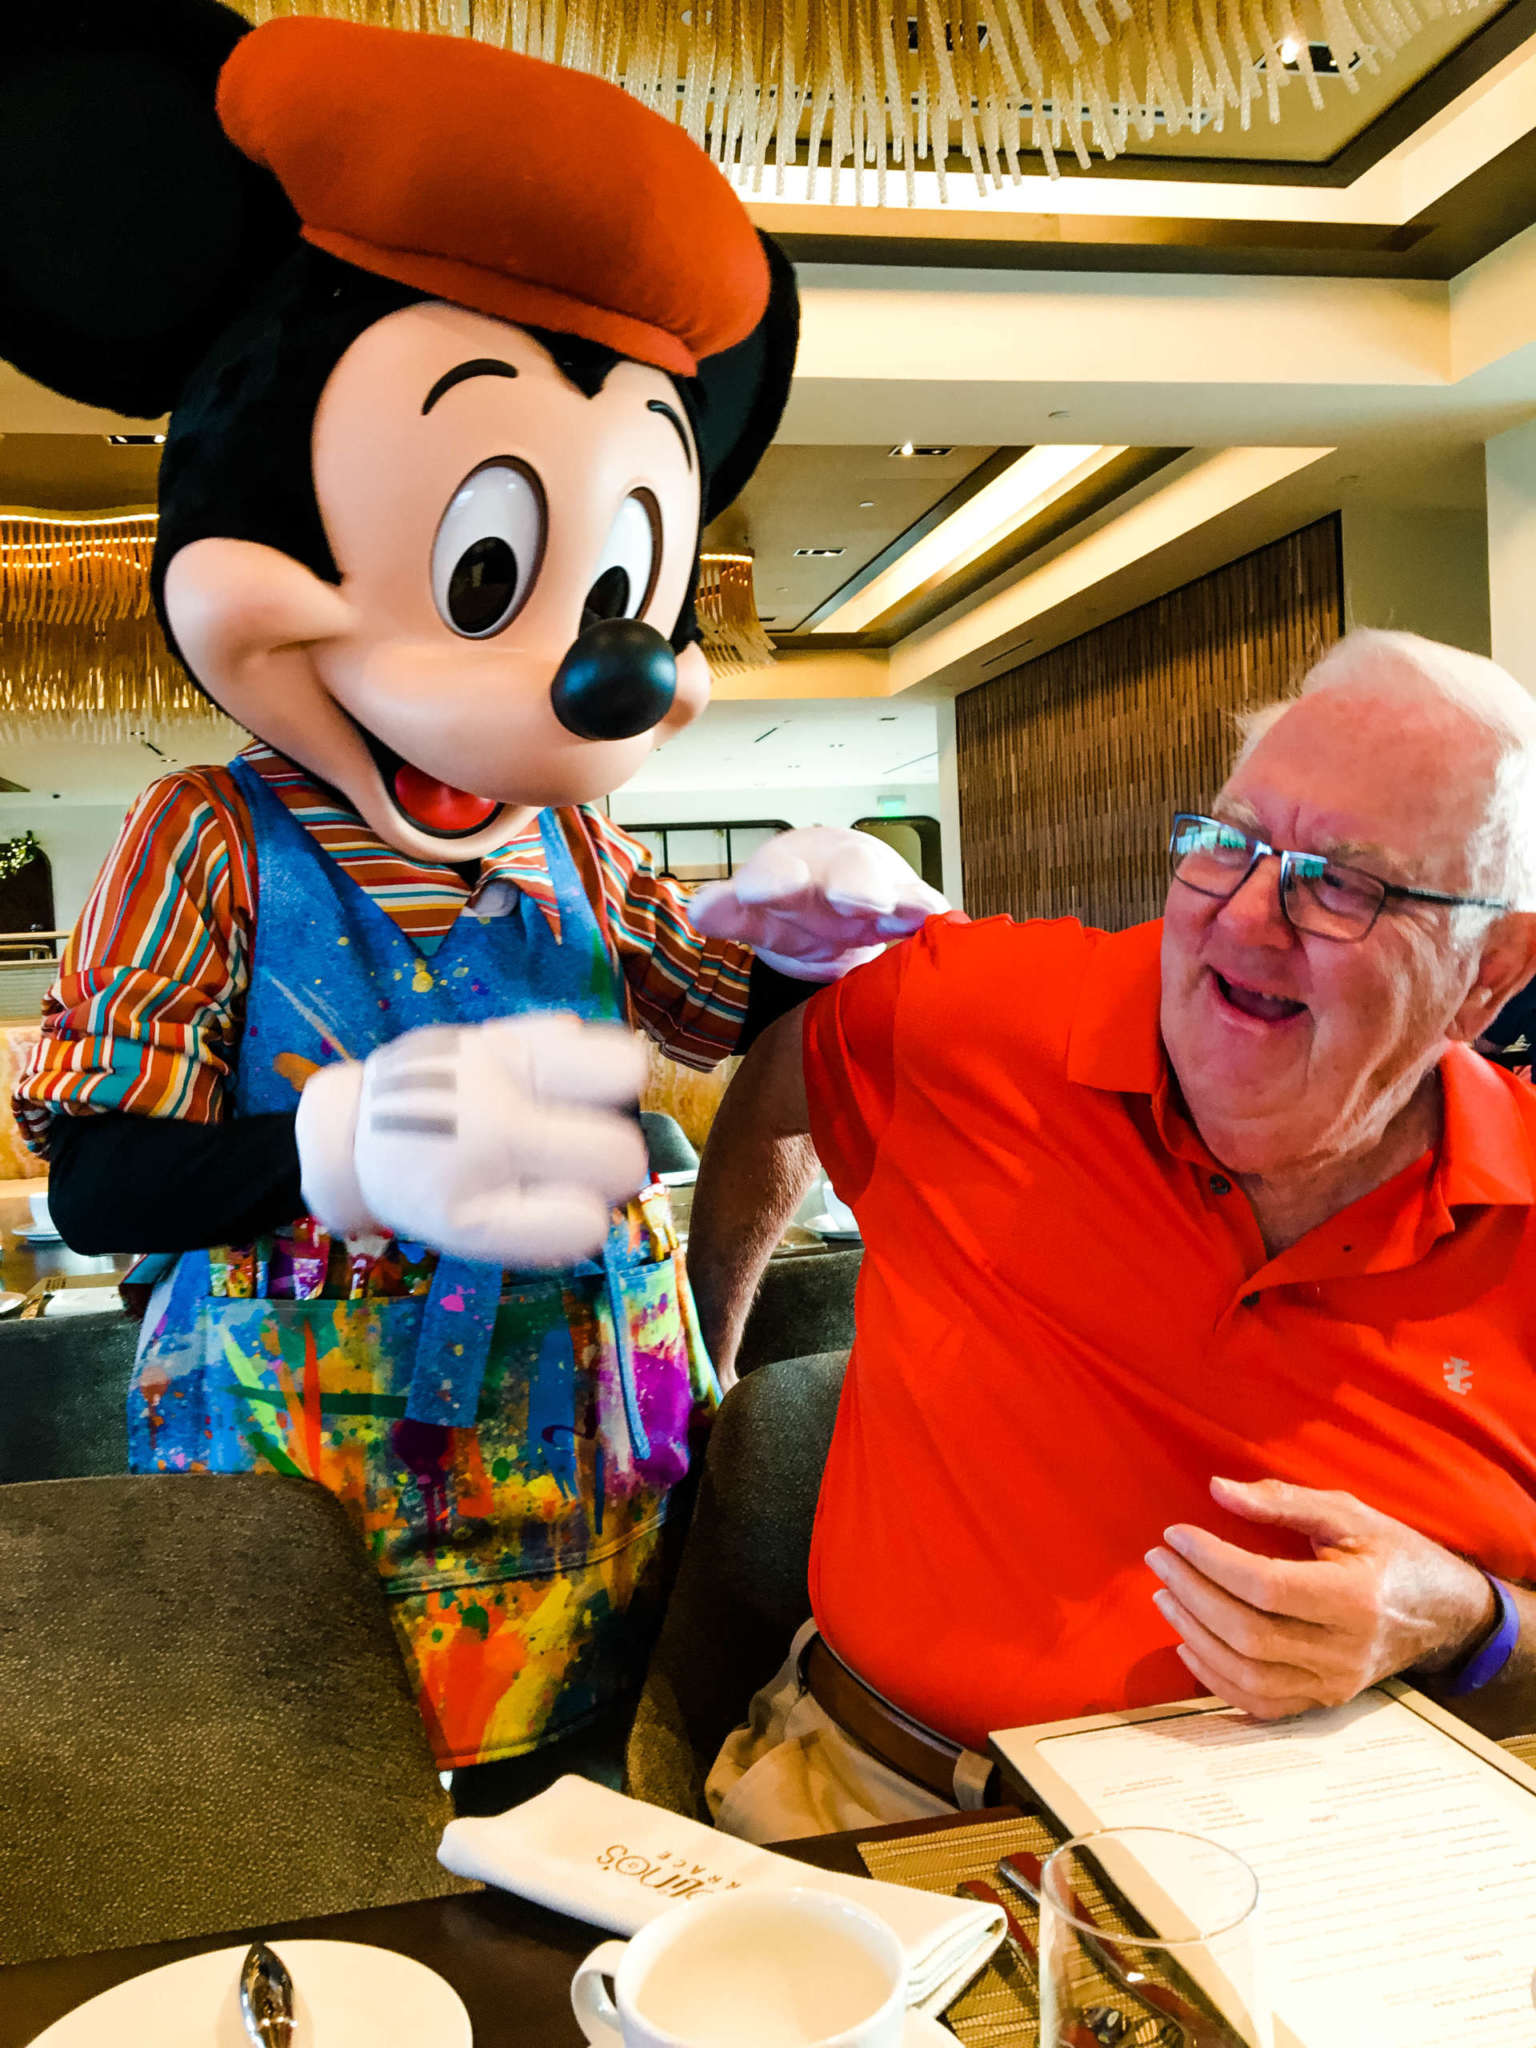 A person sitting at a table with Mickey Mouse